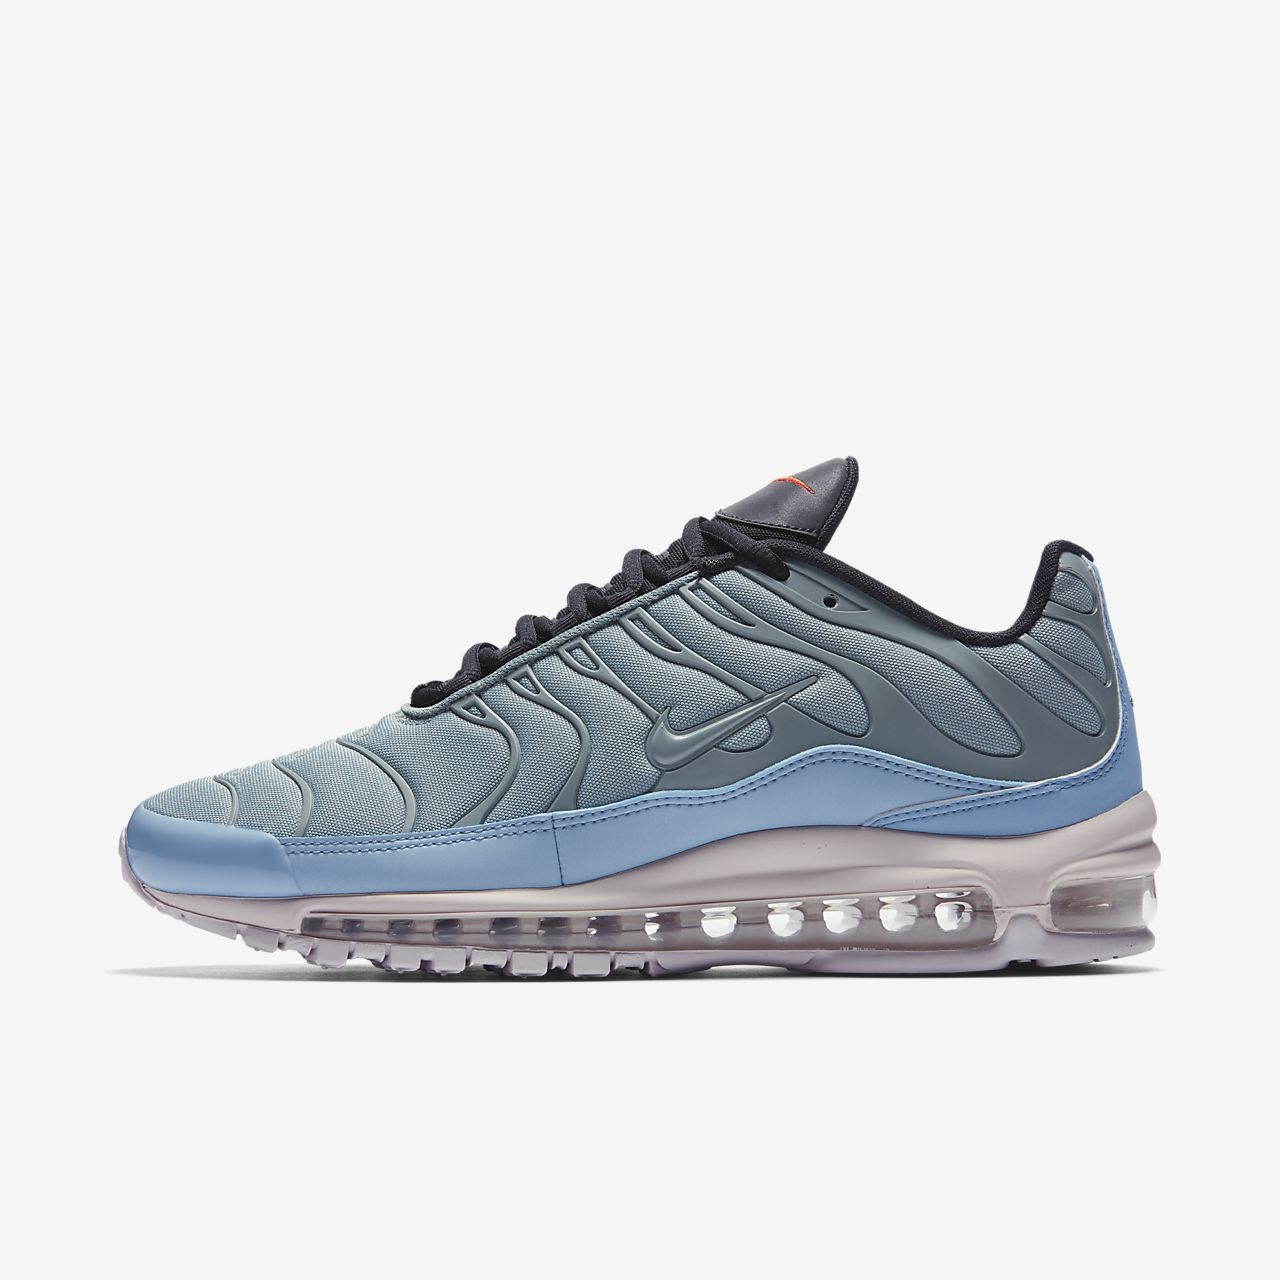 8c65e2080a7d9e Nike Air Max 97 Plus Men s Shoe. Nike.com ZA